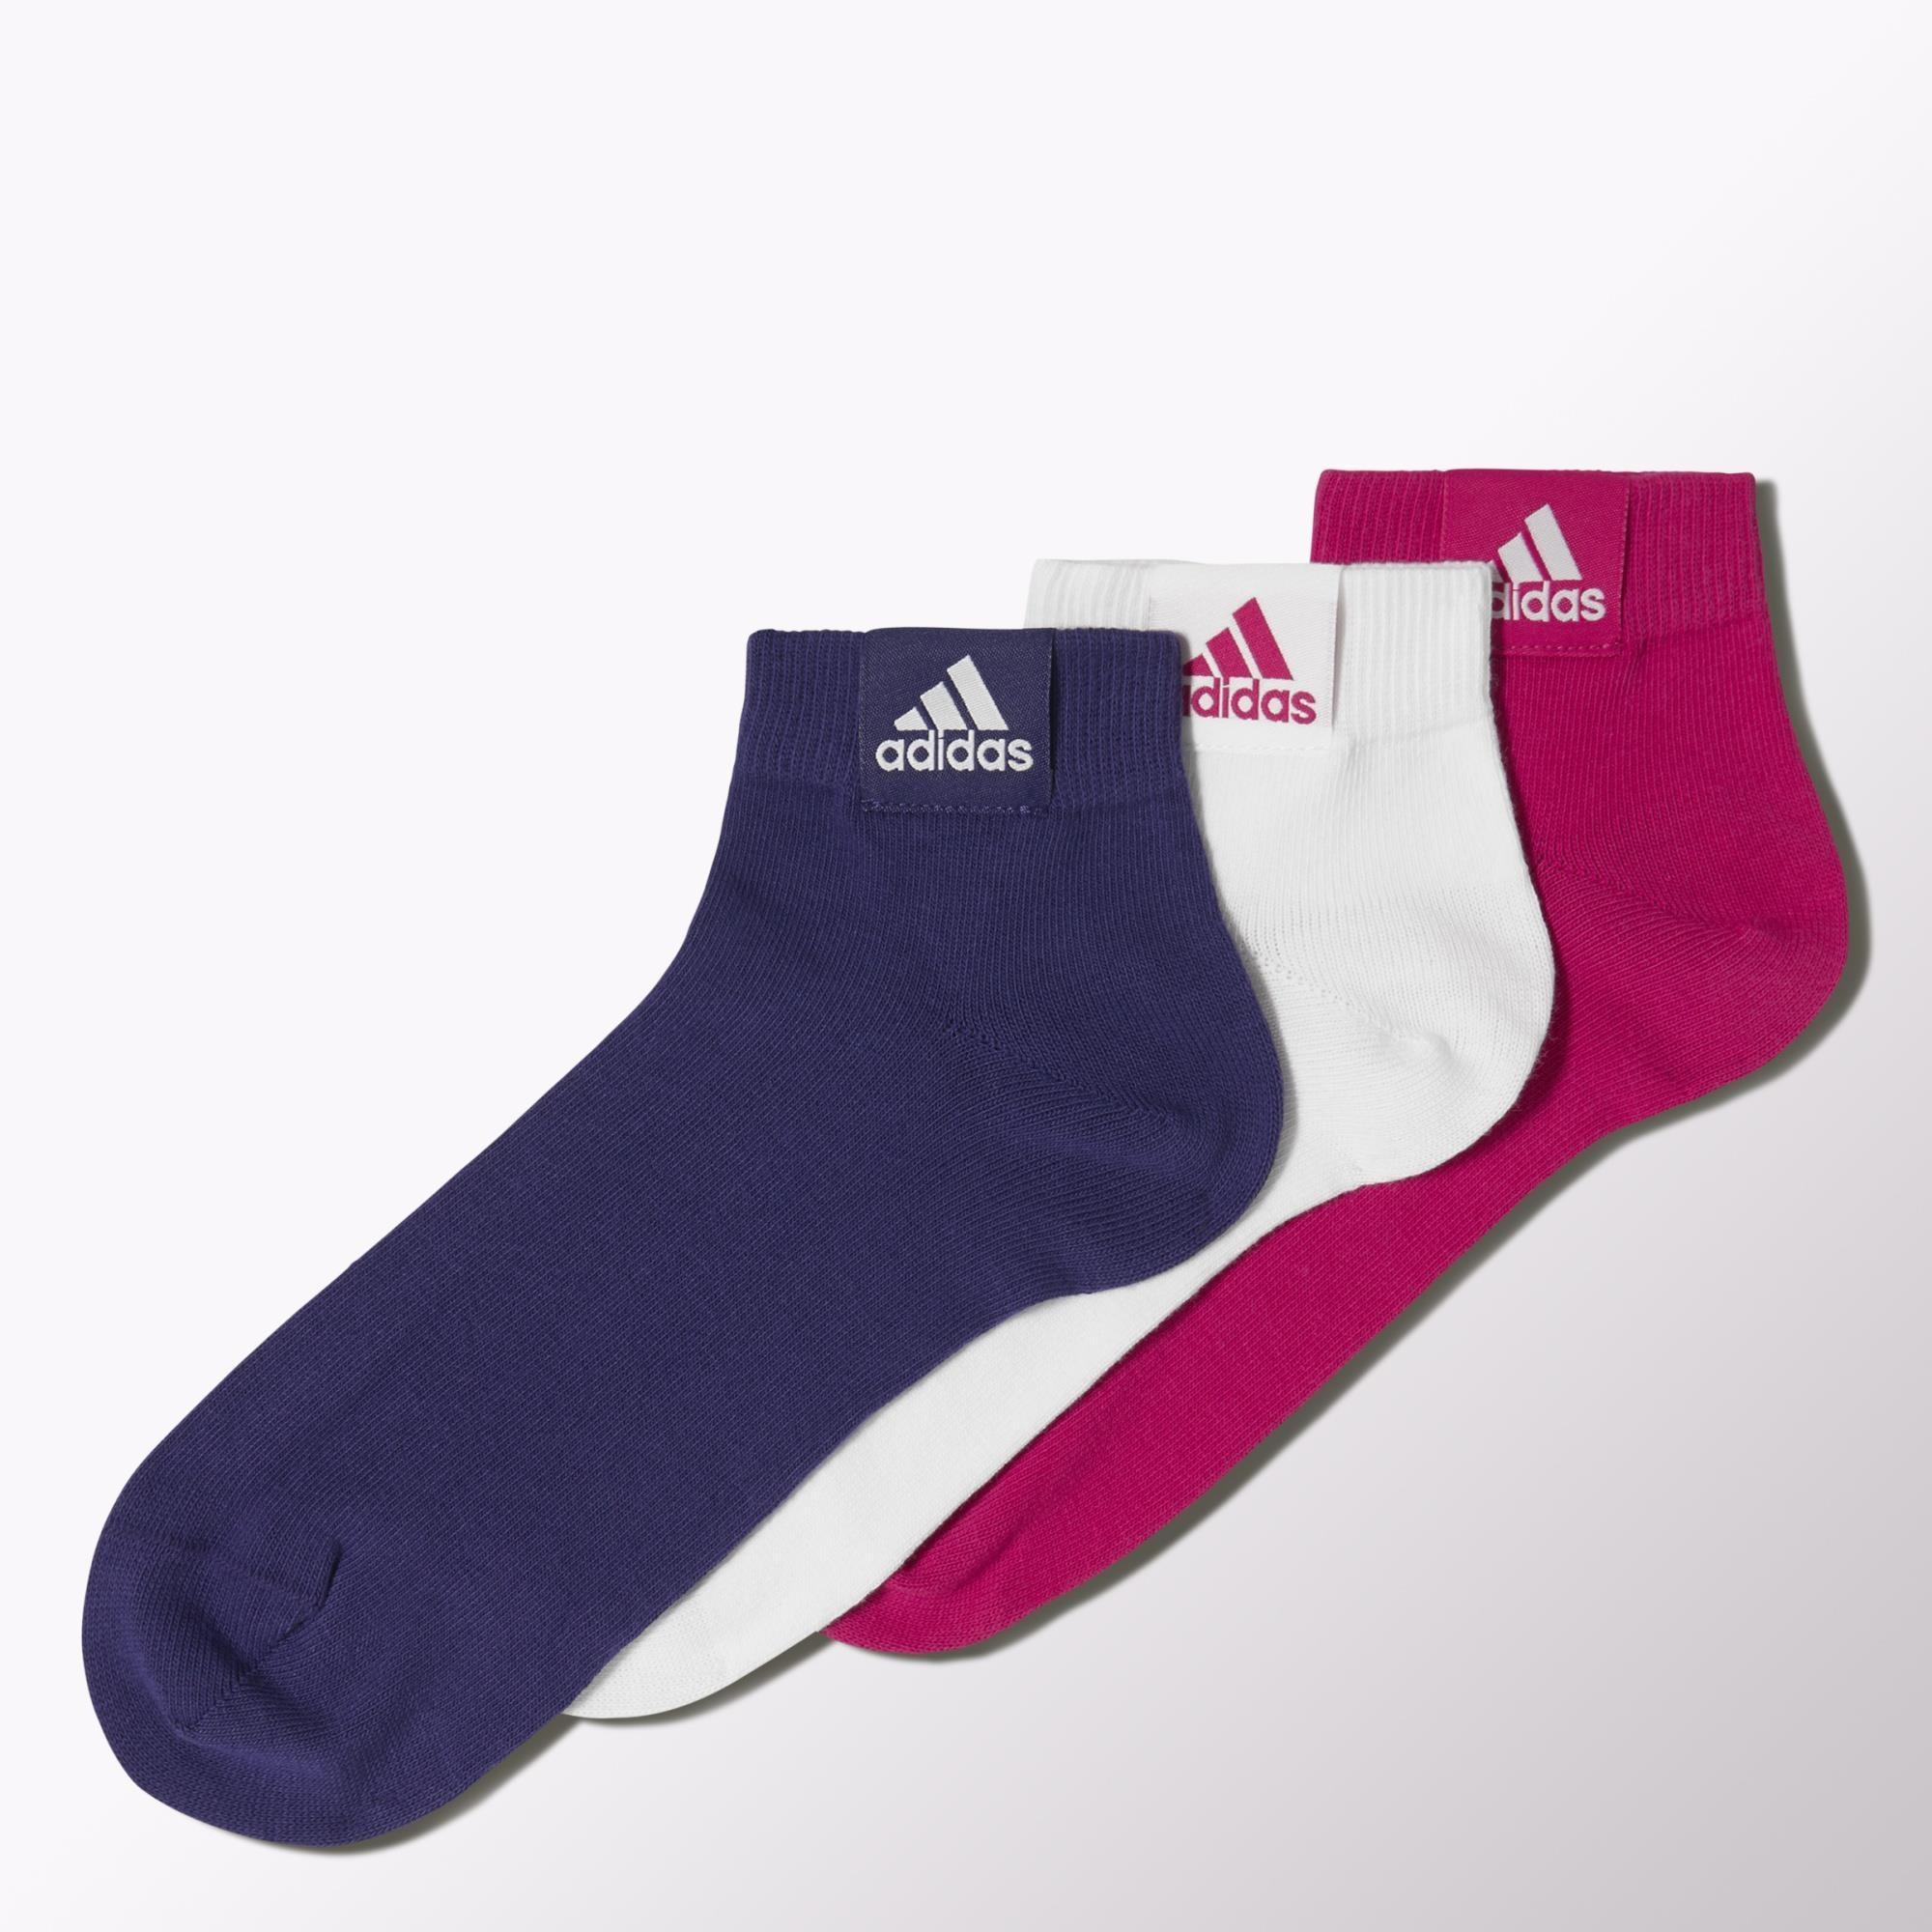 029fc2af493d Adidas Ankle Socks (3 Pairs) - Pink Buzz White Amazon Purple -  Tennisnuts.com